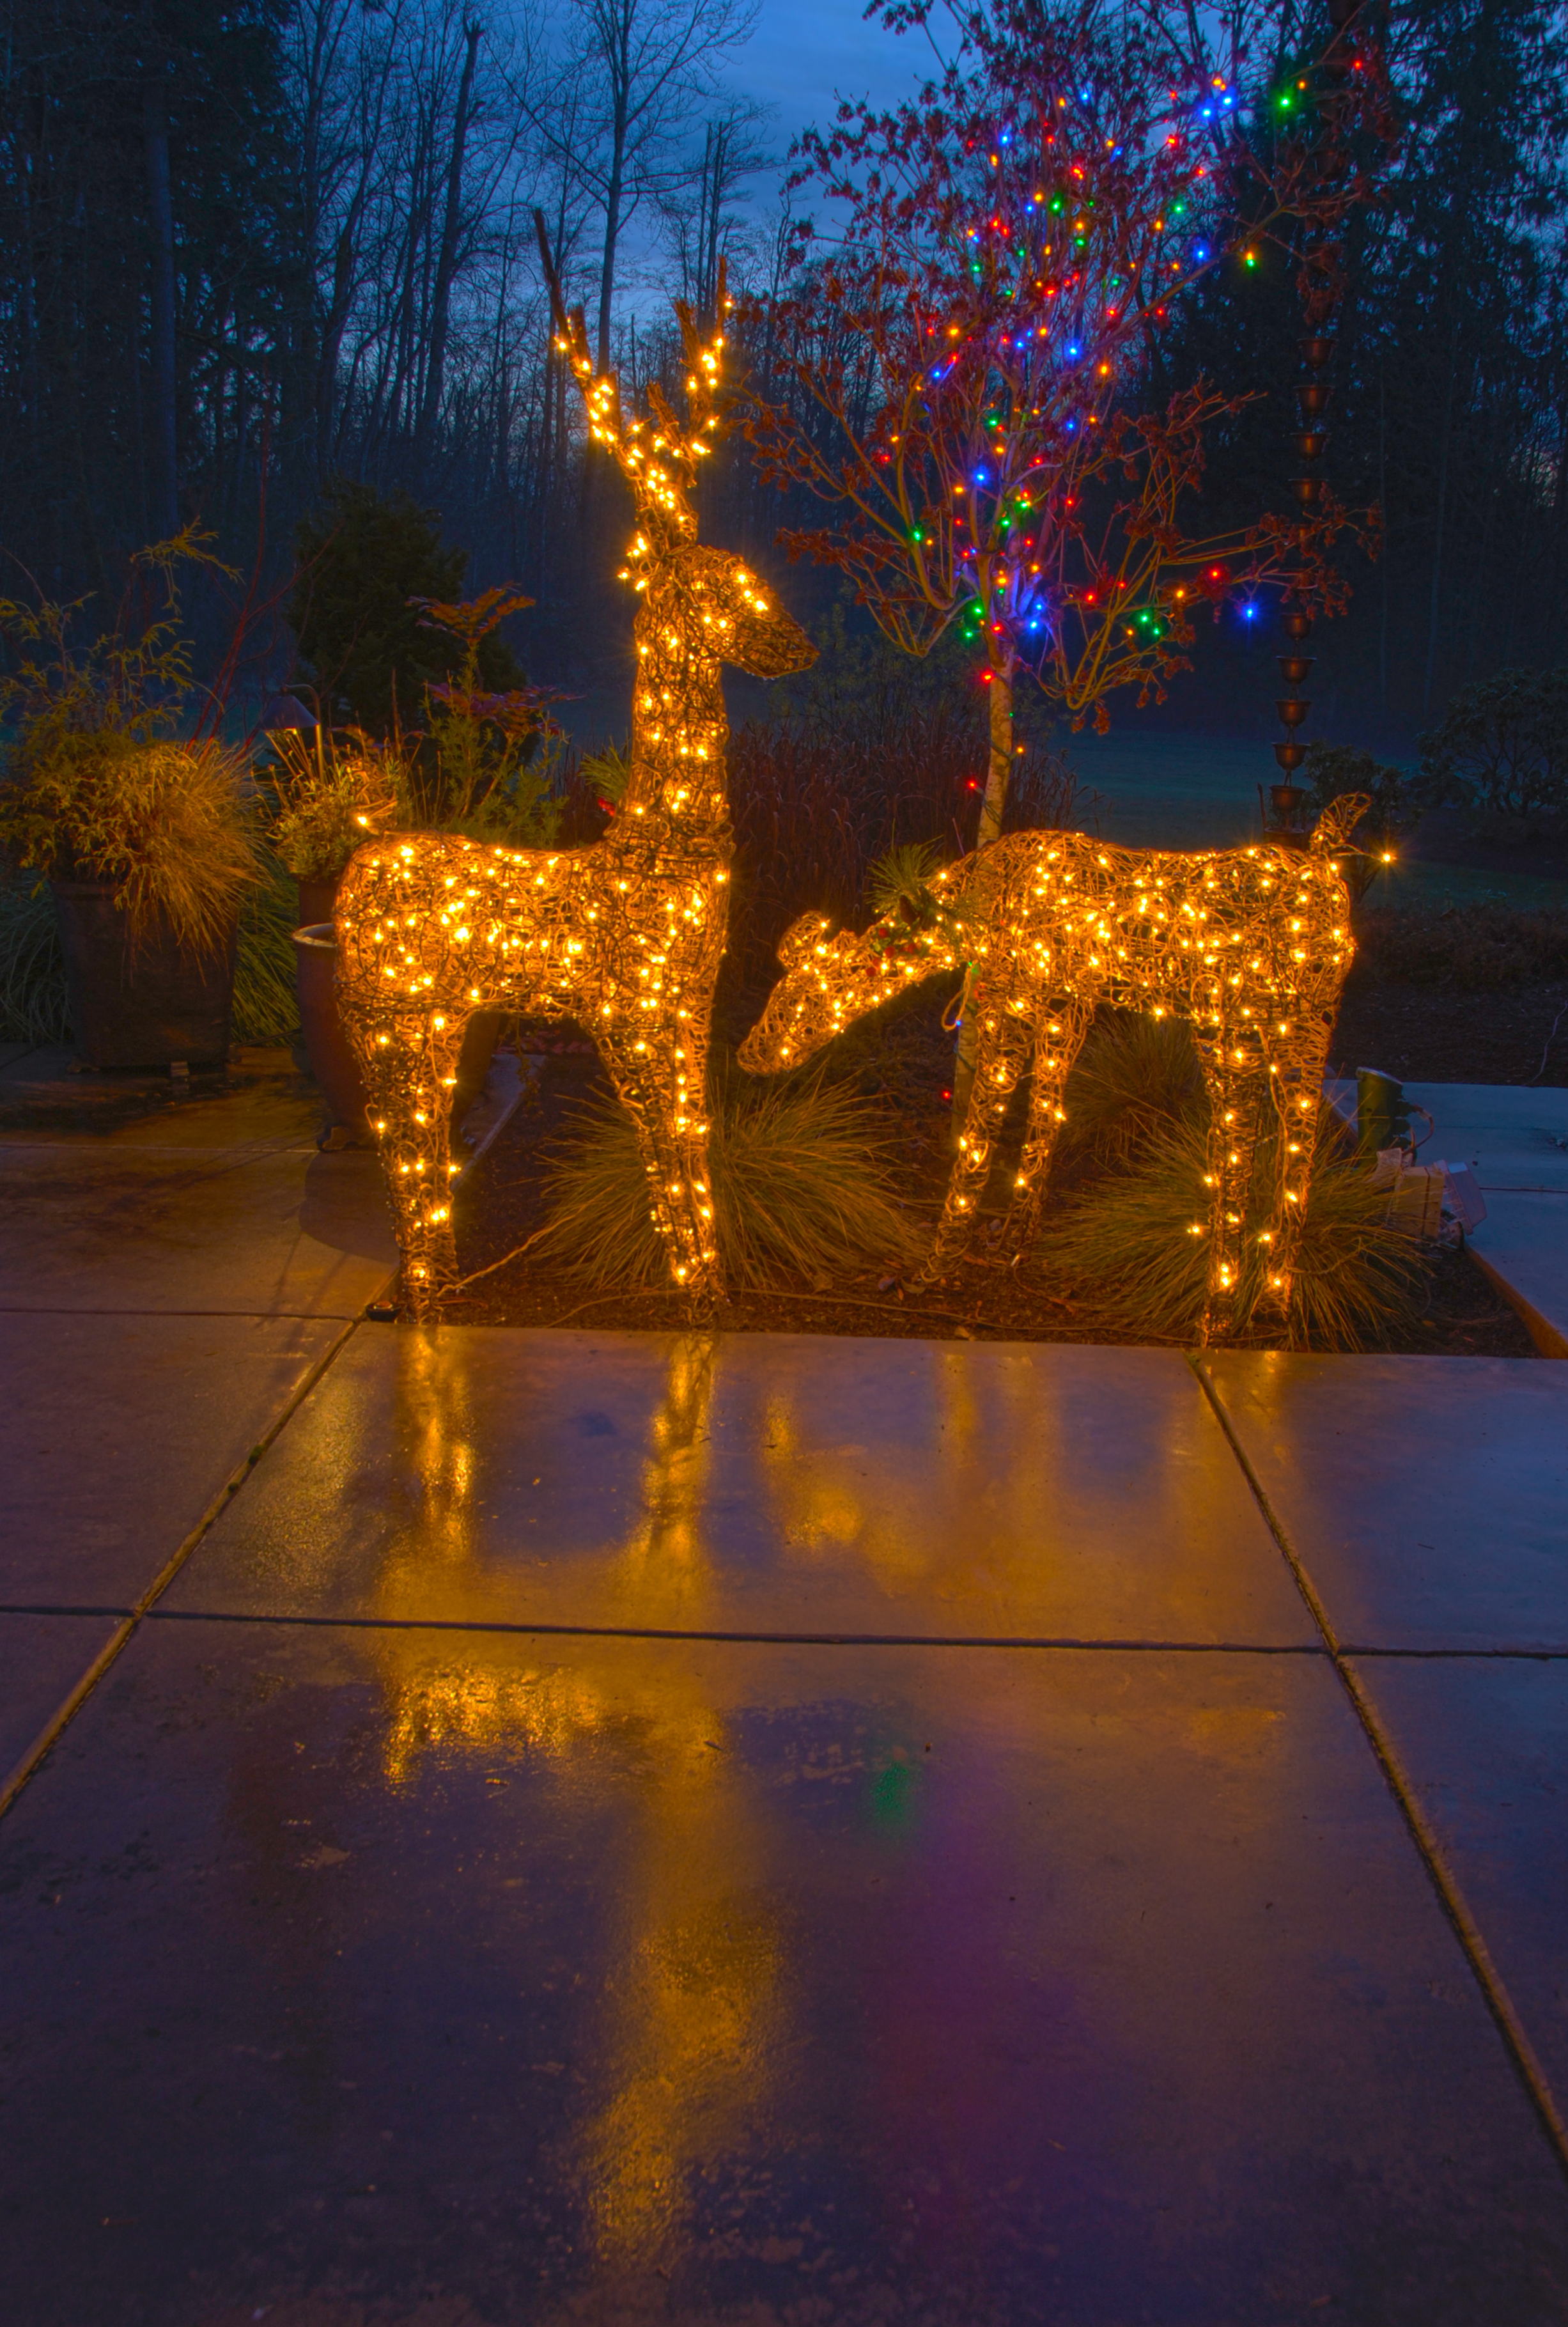 Lighted Deer by MogieG123